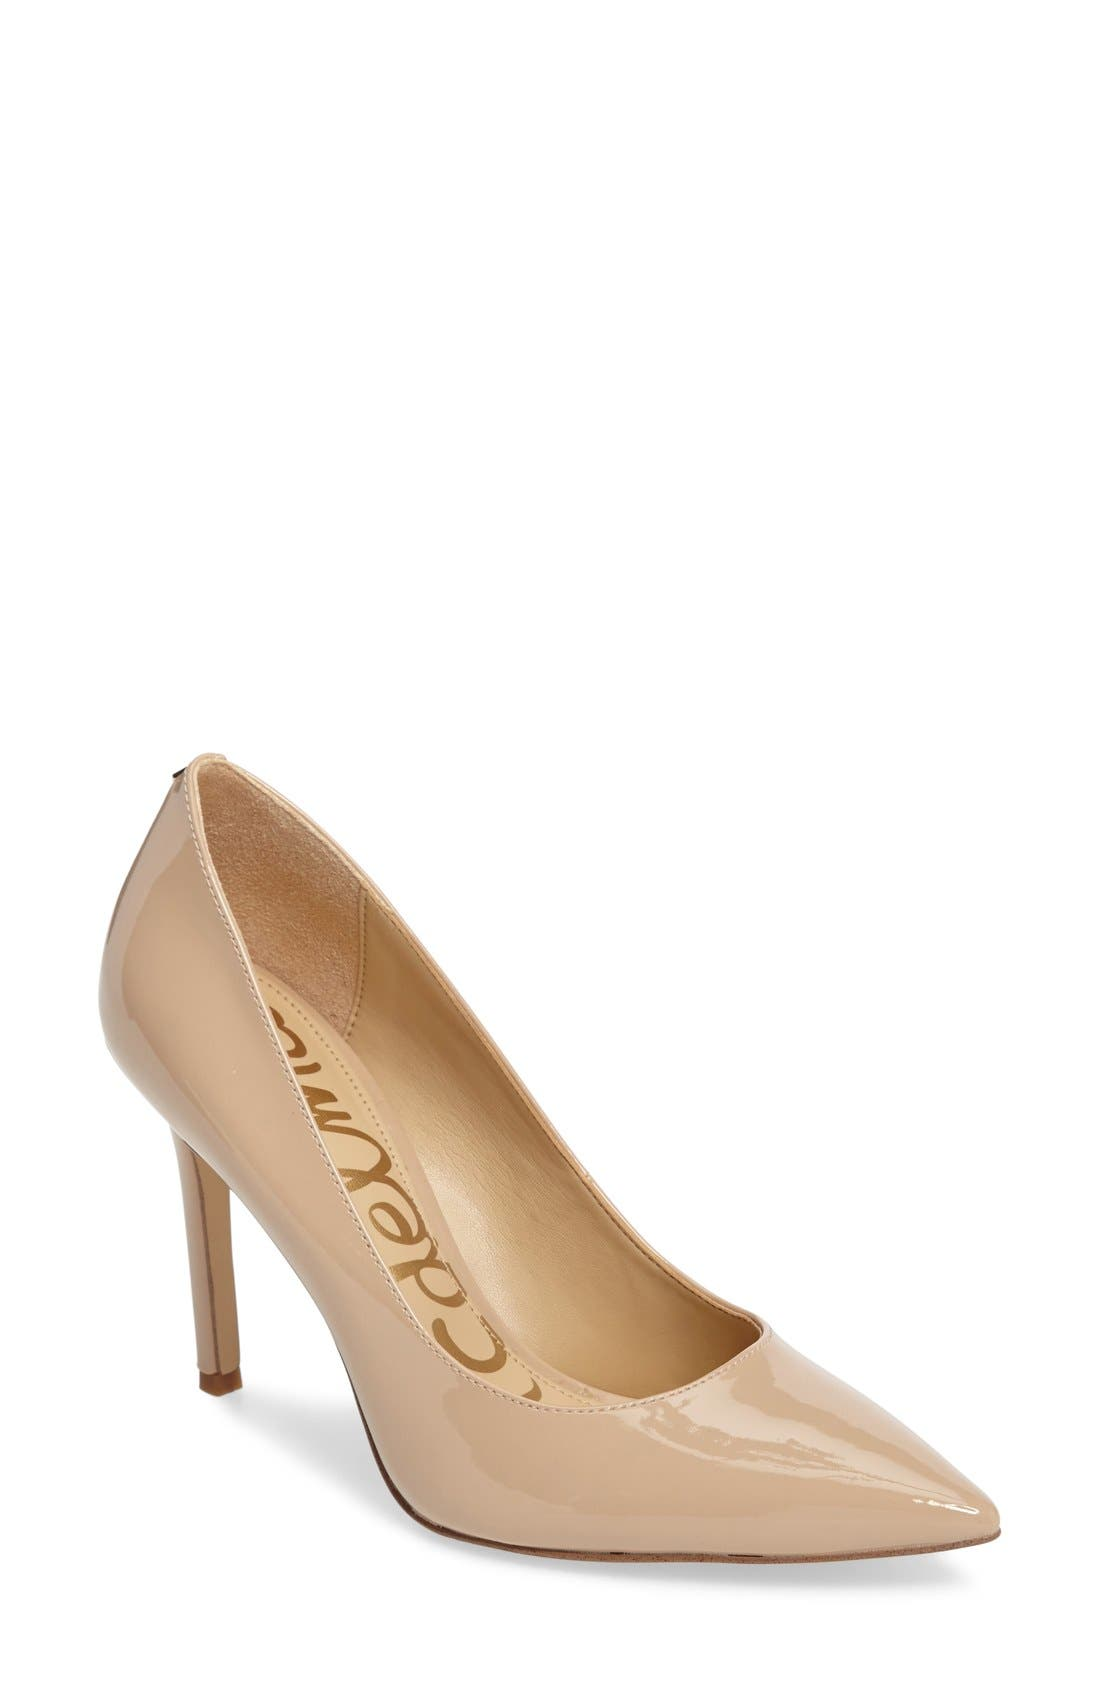 Alternate Image 1 Selected - Sam Edelman Hazel Pointy Toe Pump (Women)